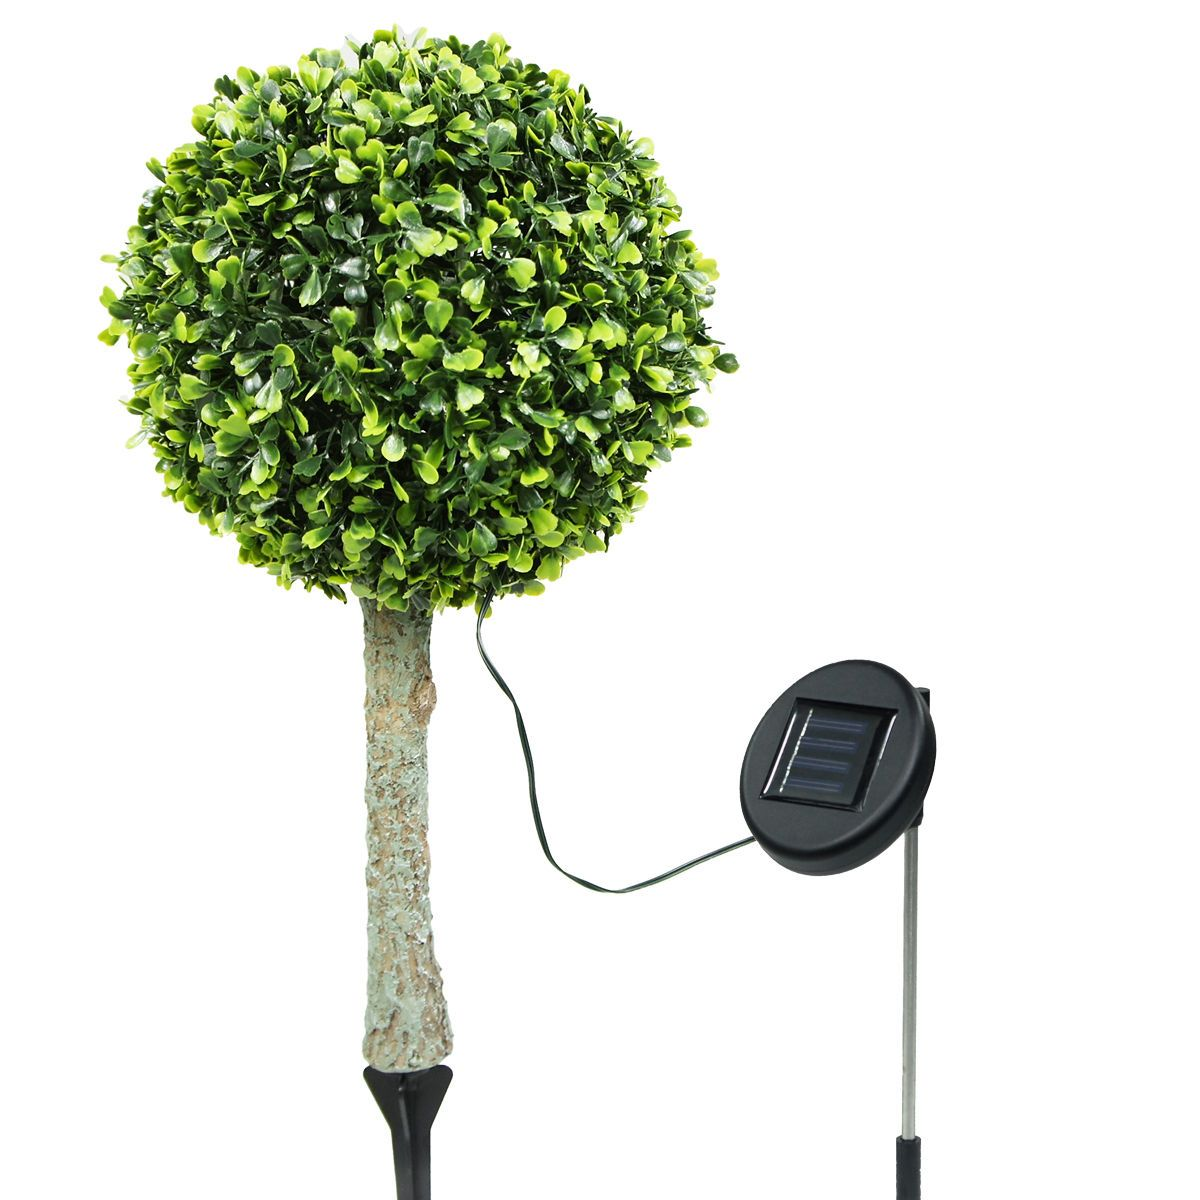 2 outdoor garden 30 led solar topiary tree bush landscape path light 2 outdoor garden 30 led solar topiary tree bush landscape path light yard lamp aloadofball